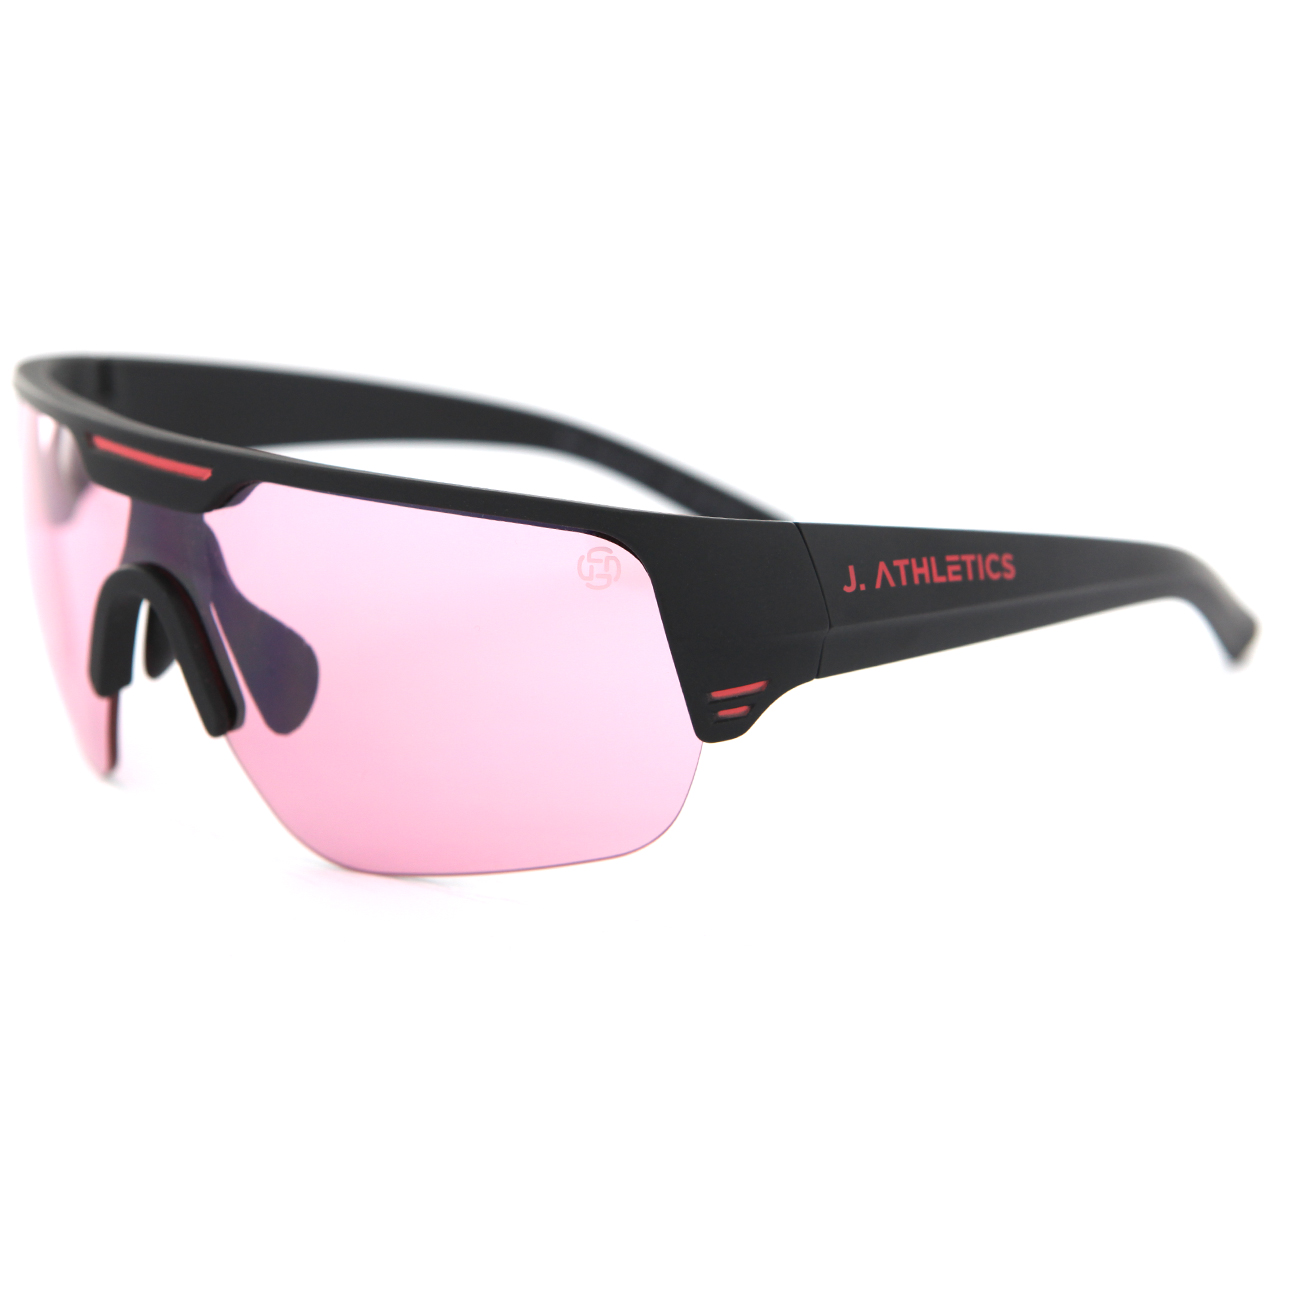 J. Athletics Flying Dutchman pink/black